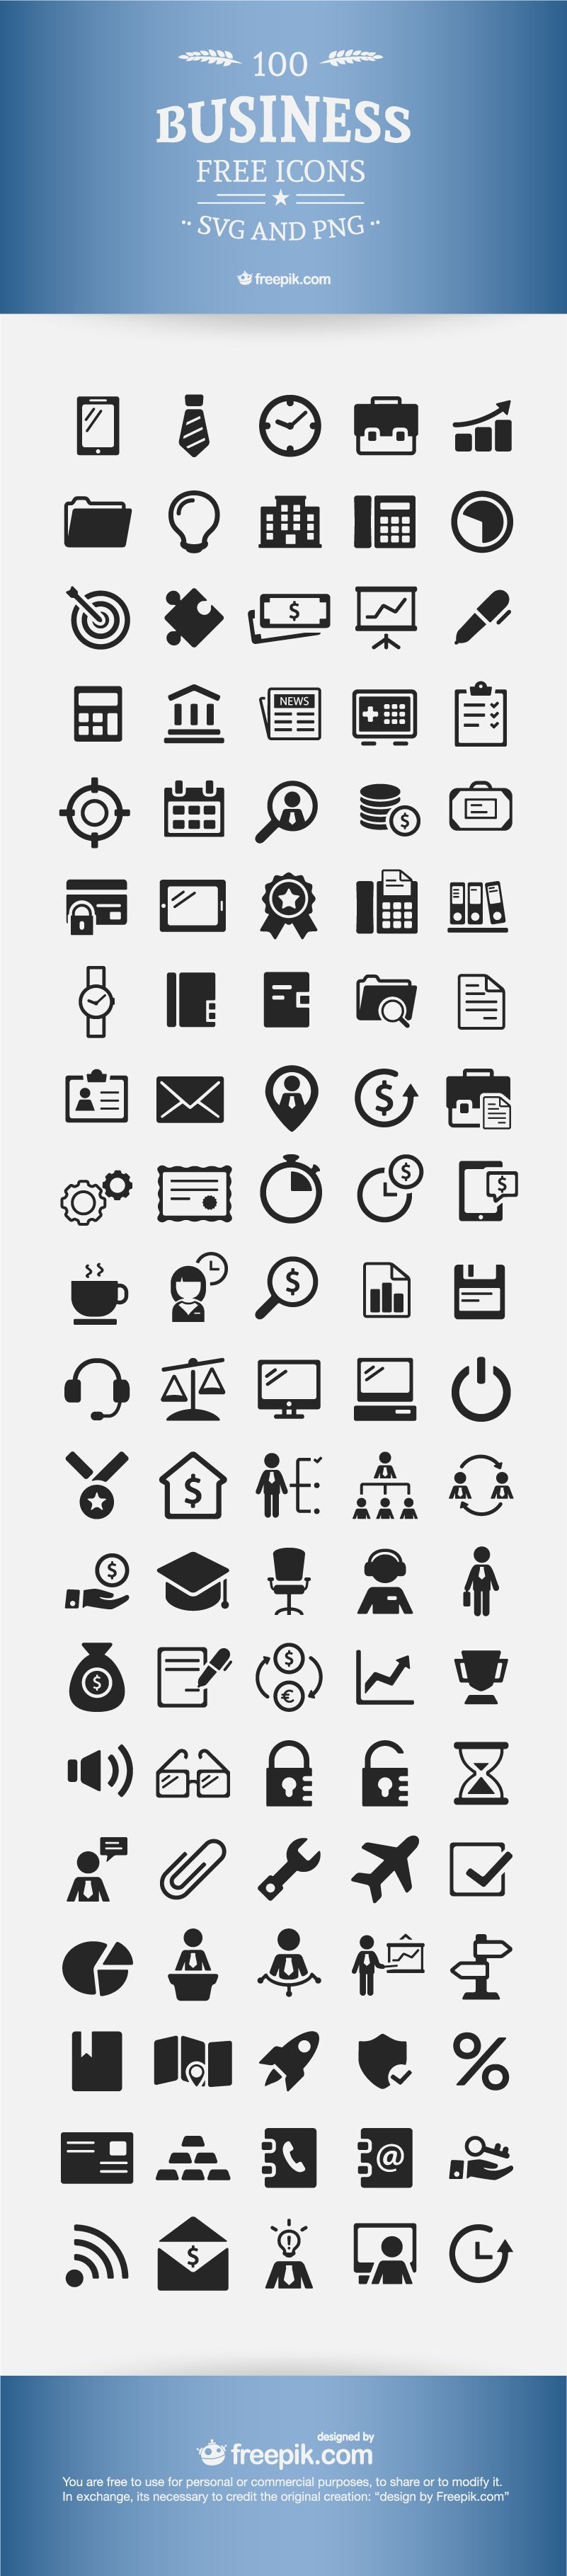 [Download] Free Business Icons 100 Vectors Business